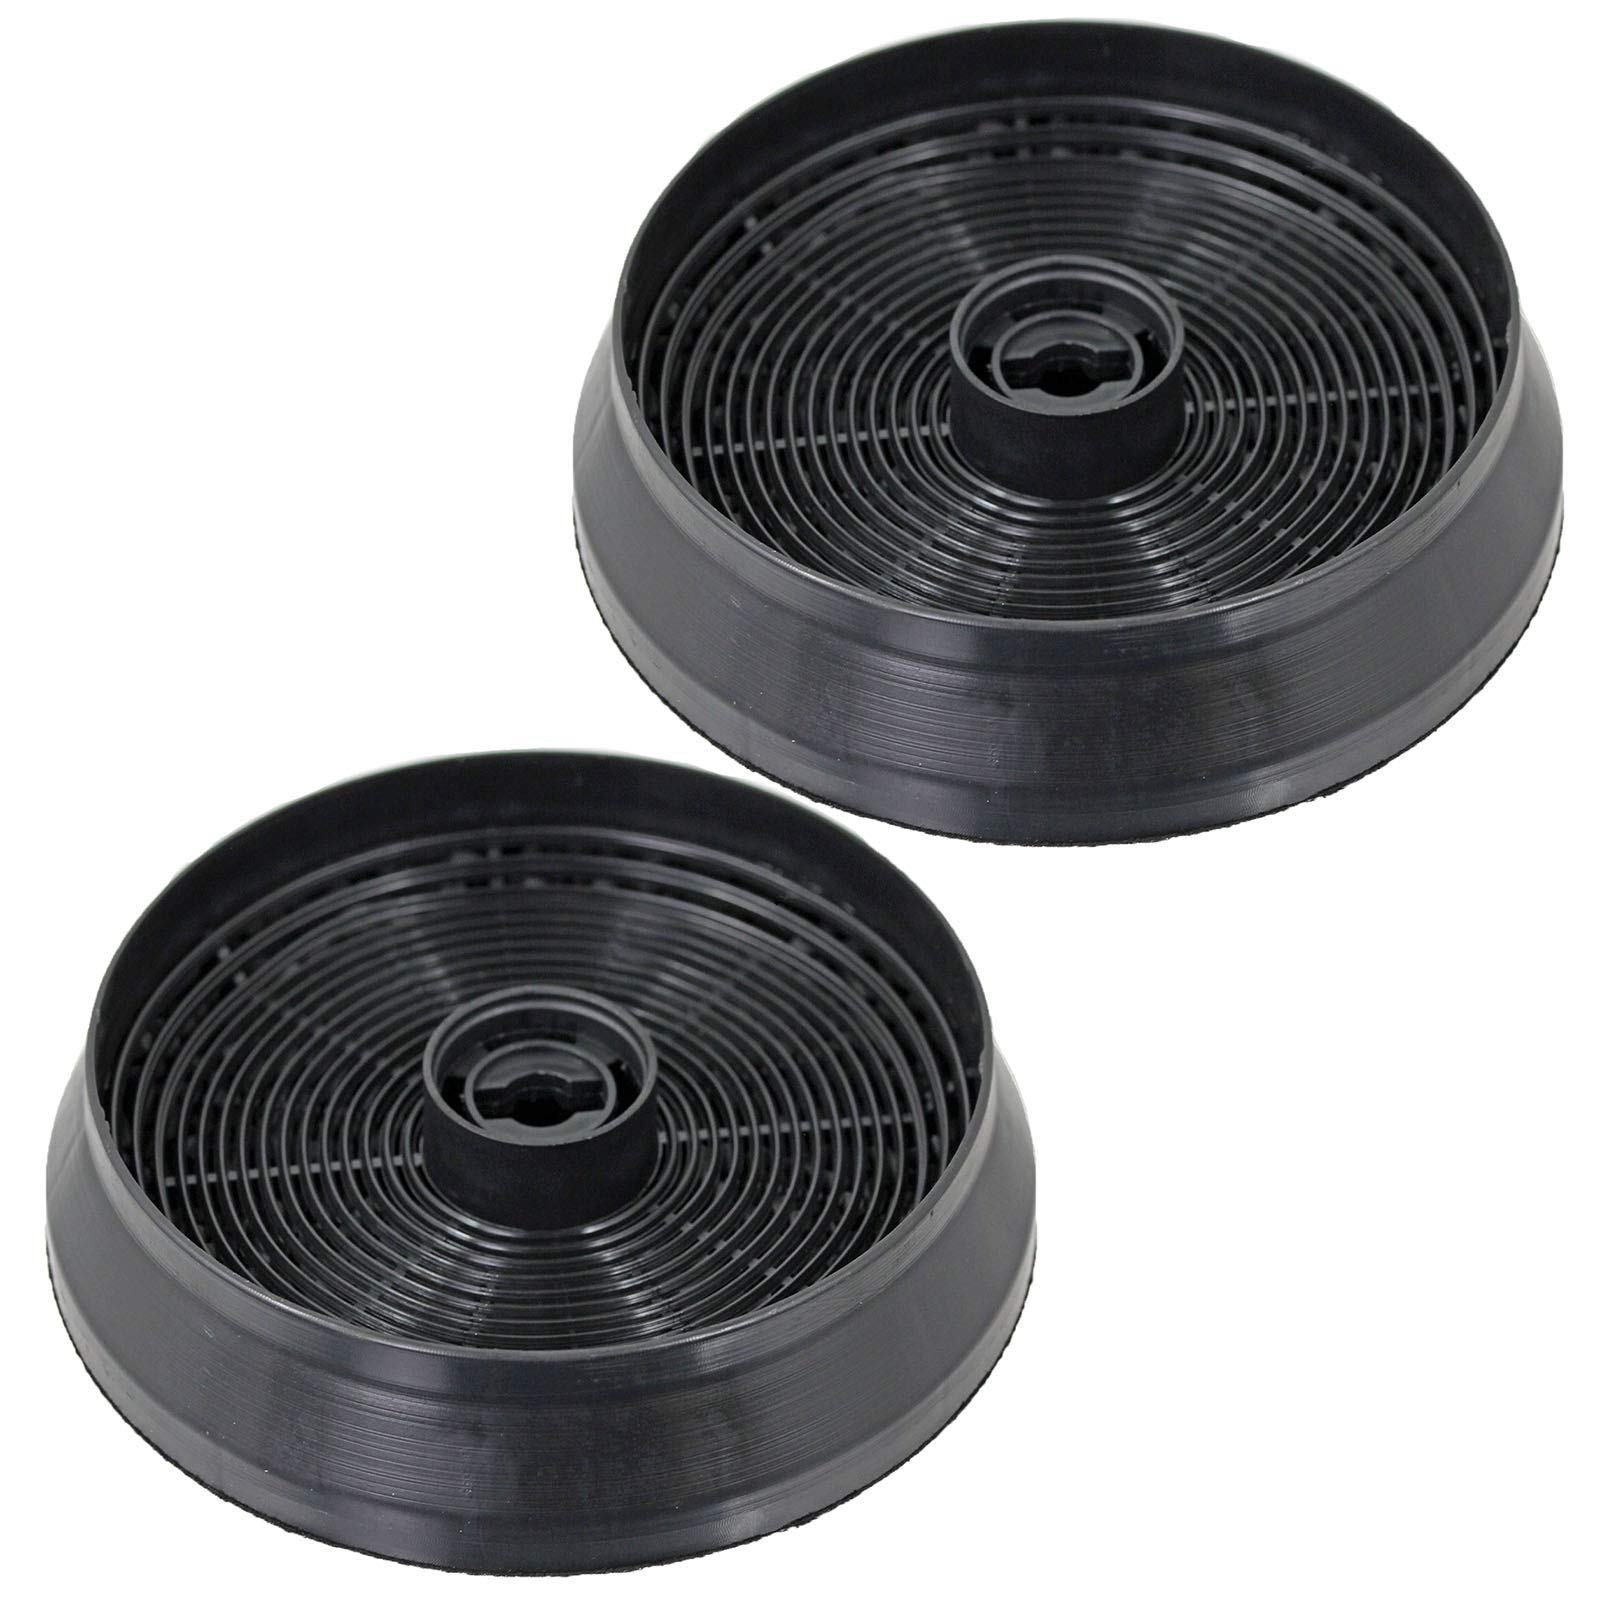 SPARES2GO Cooker Hood Magic Grease Filter with Saturation Indicator for Teka Kitchen Extractor Fan Vent